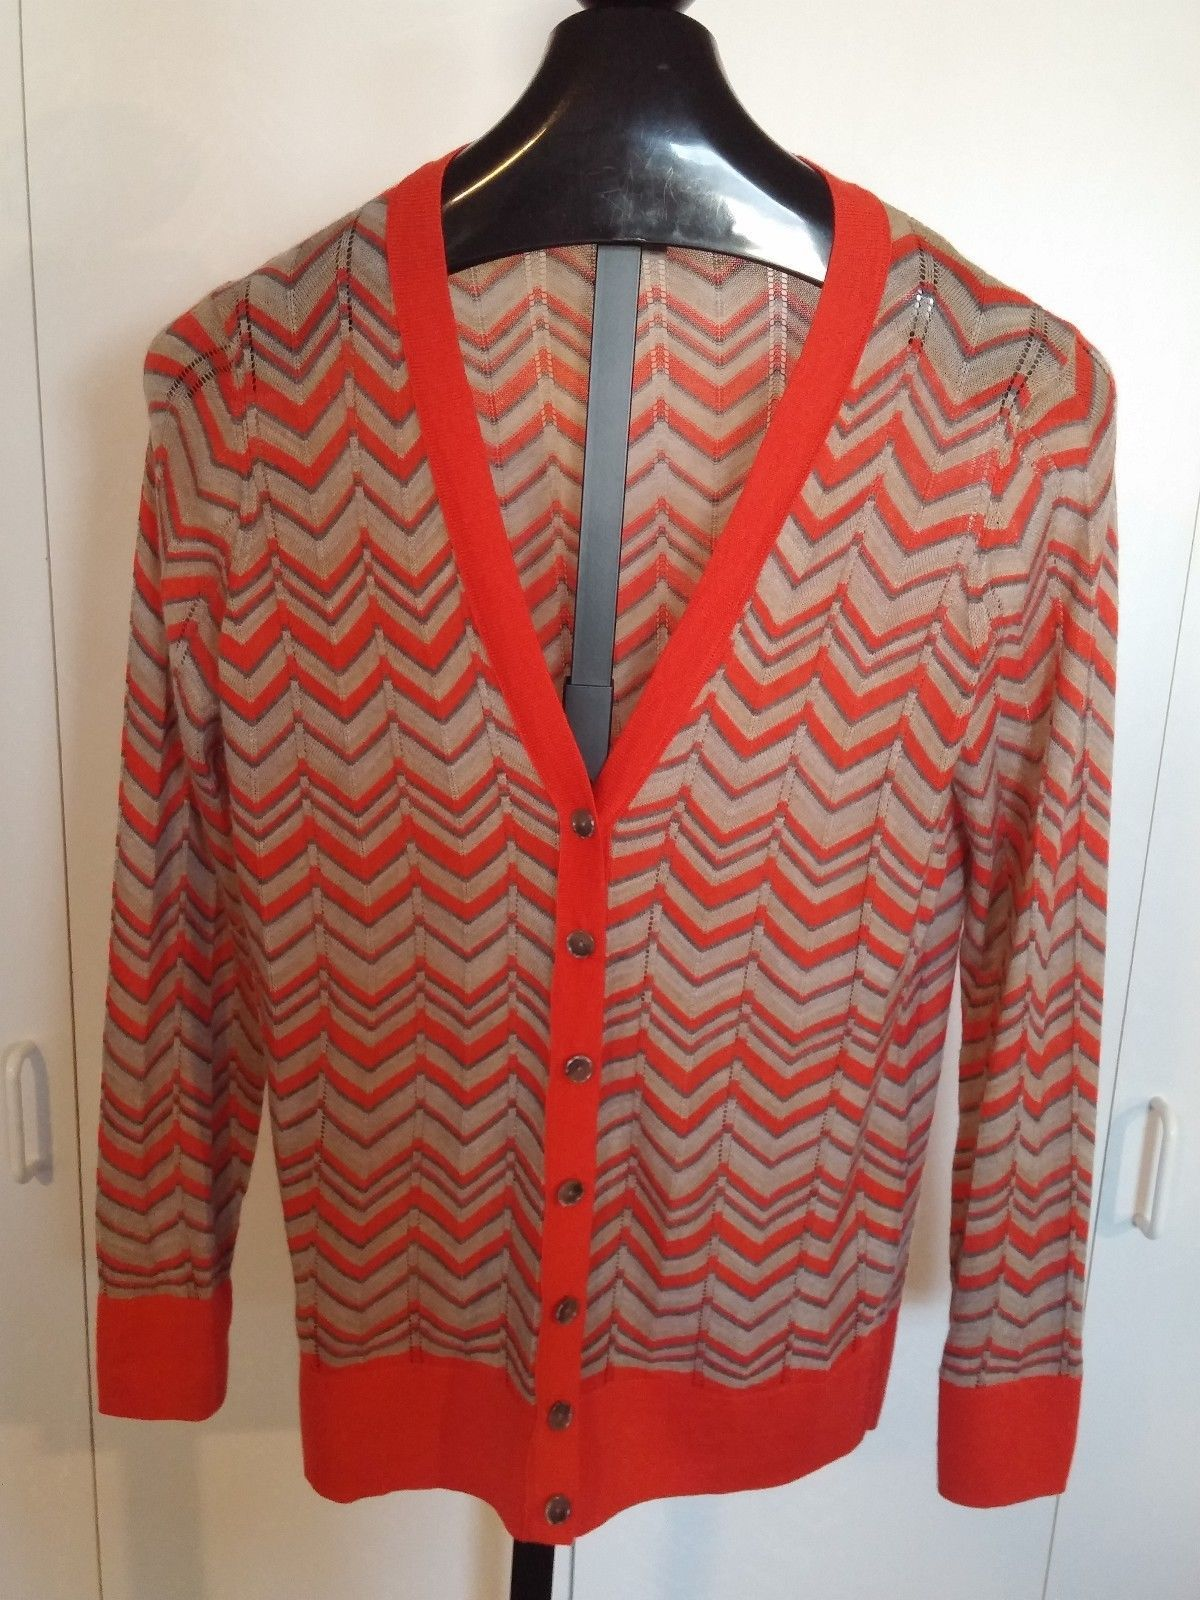 Primary image for LOFT ANN TAYLOR LADIES LS ACRYLIC/WOOL/POLY CARDIGAN SWEATER-L-WORN ONCE-THIN